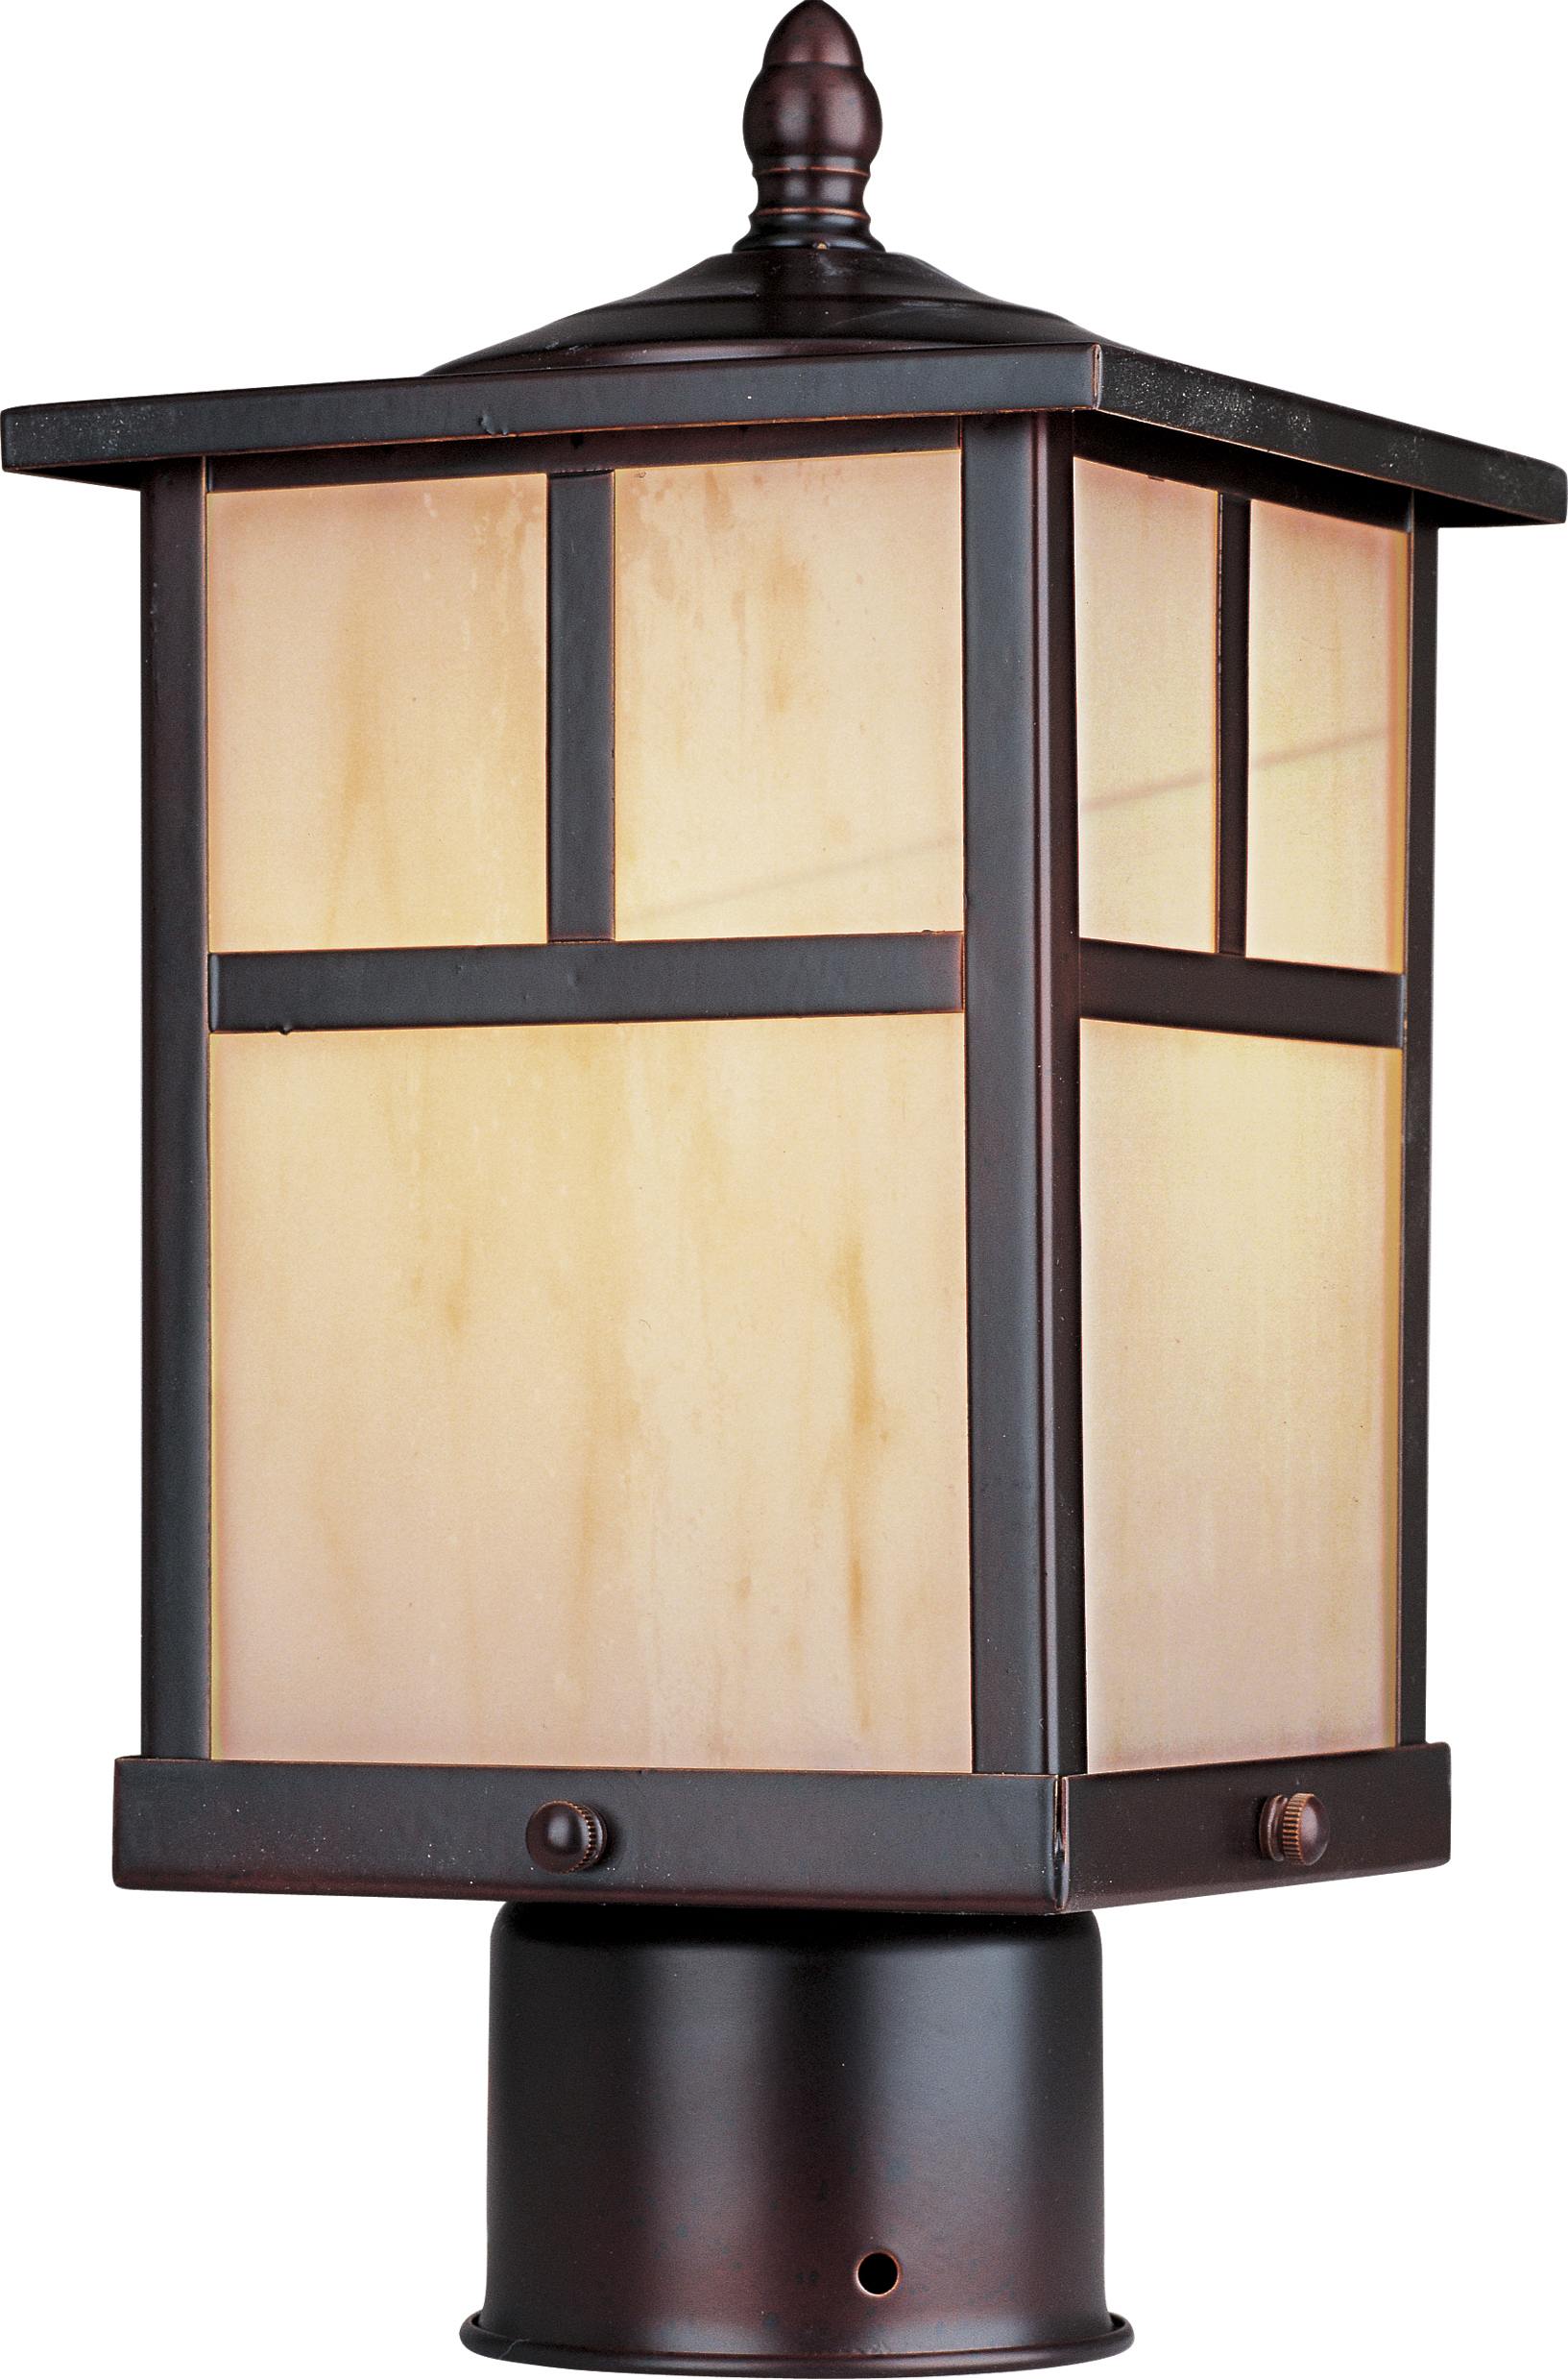 Coldwater led 1 light outdoor polepost lantern outdoor polepost coldwater led arubaitofo Image collections